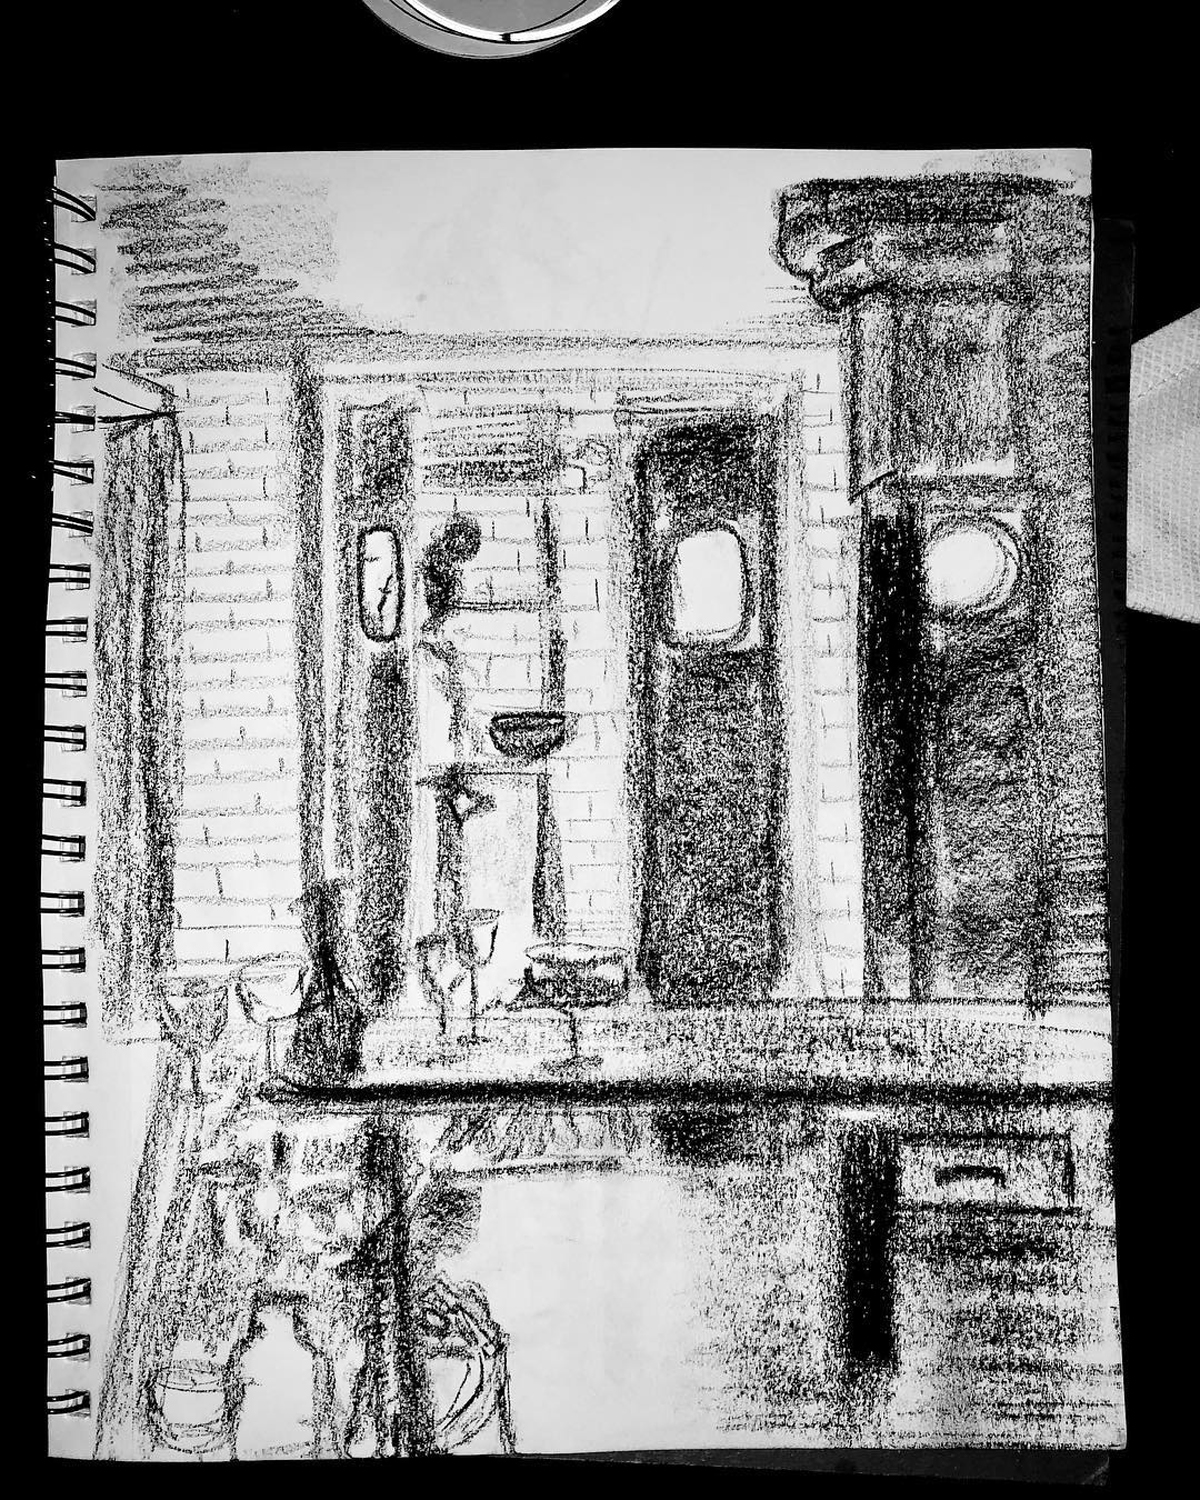 katrina-eugenia-charcoal-drawings-the-beatrice-inn-nyc-charcoal-on-paper-drawn-from-life-artist-nyc-live-artist-art-drawing56.jpg